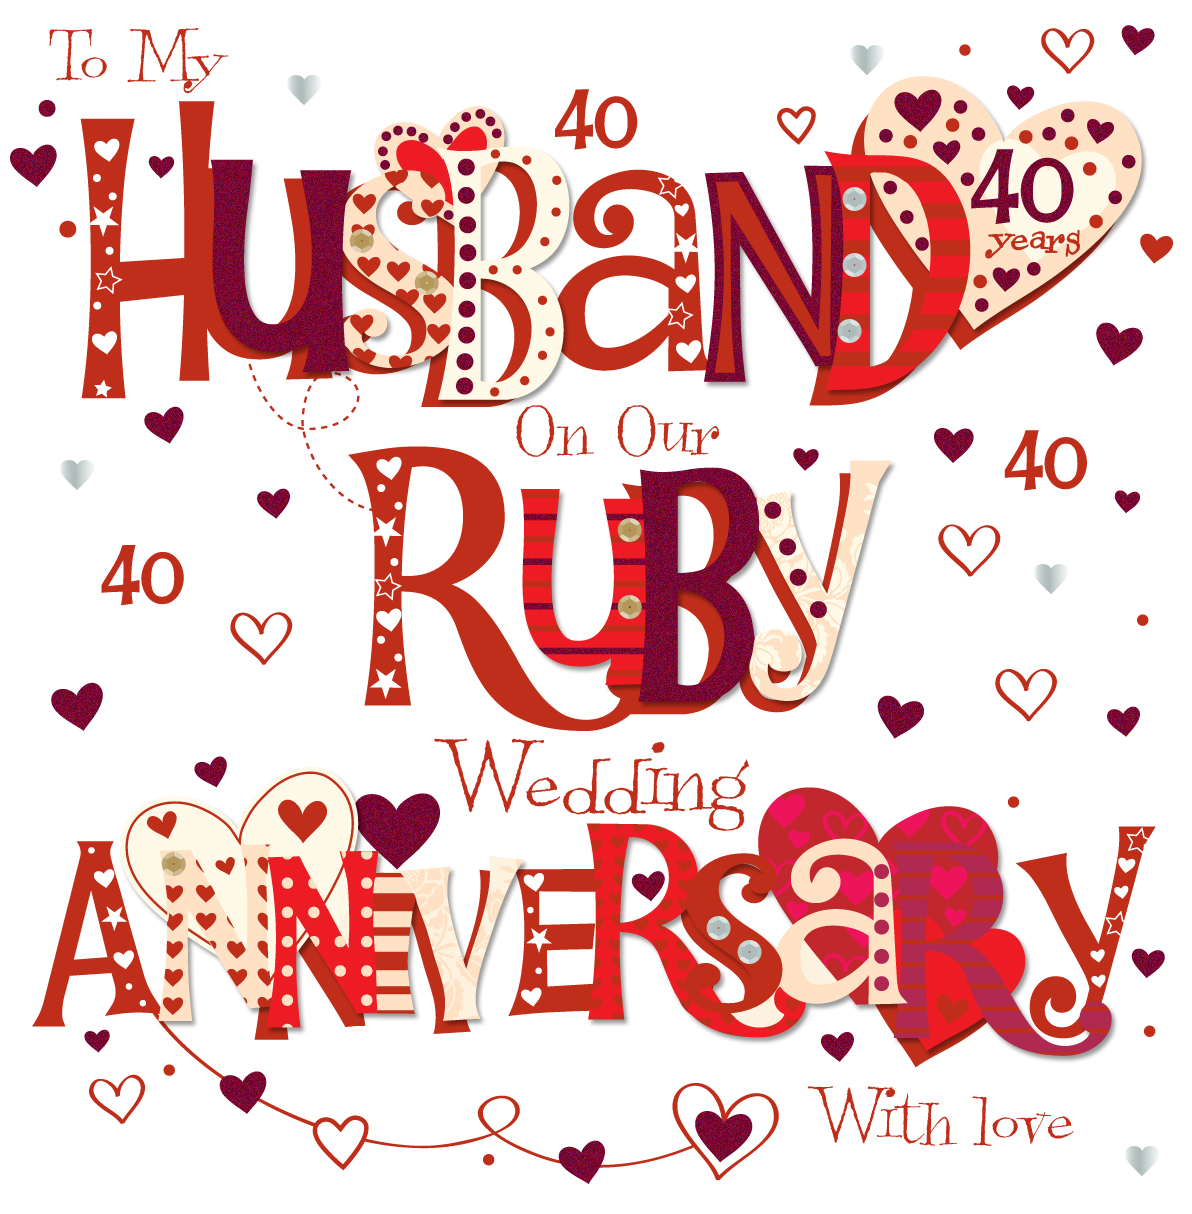 40 Wedding Anniversary Gift For Husband : Husband Ruby 40th Wedding Anniversary Greeting Card Cards Love ...